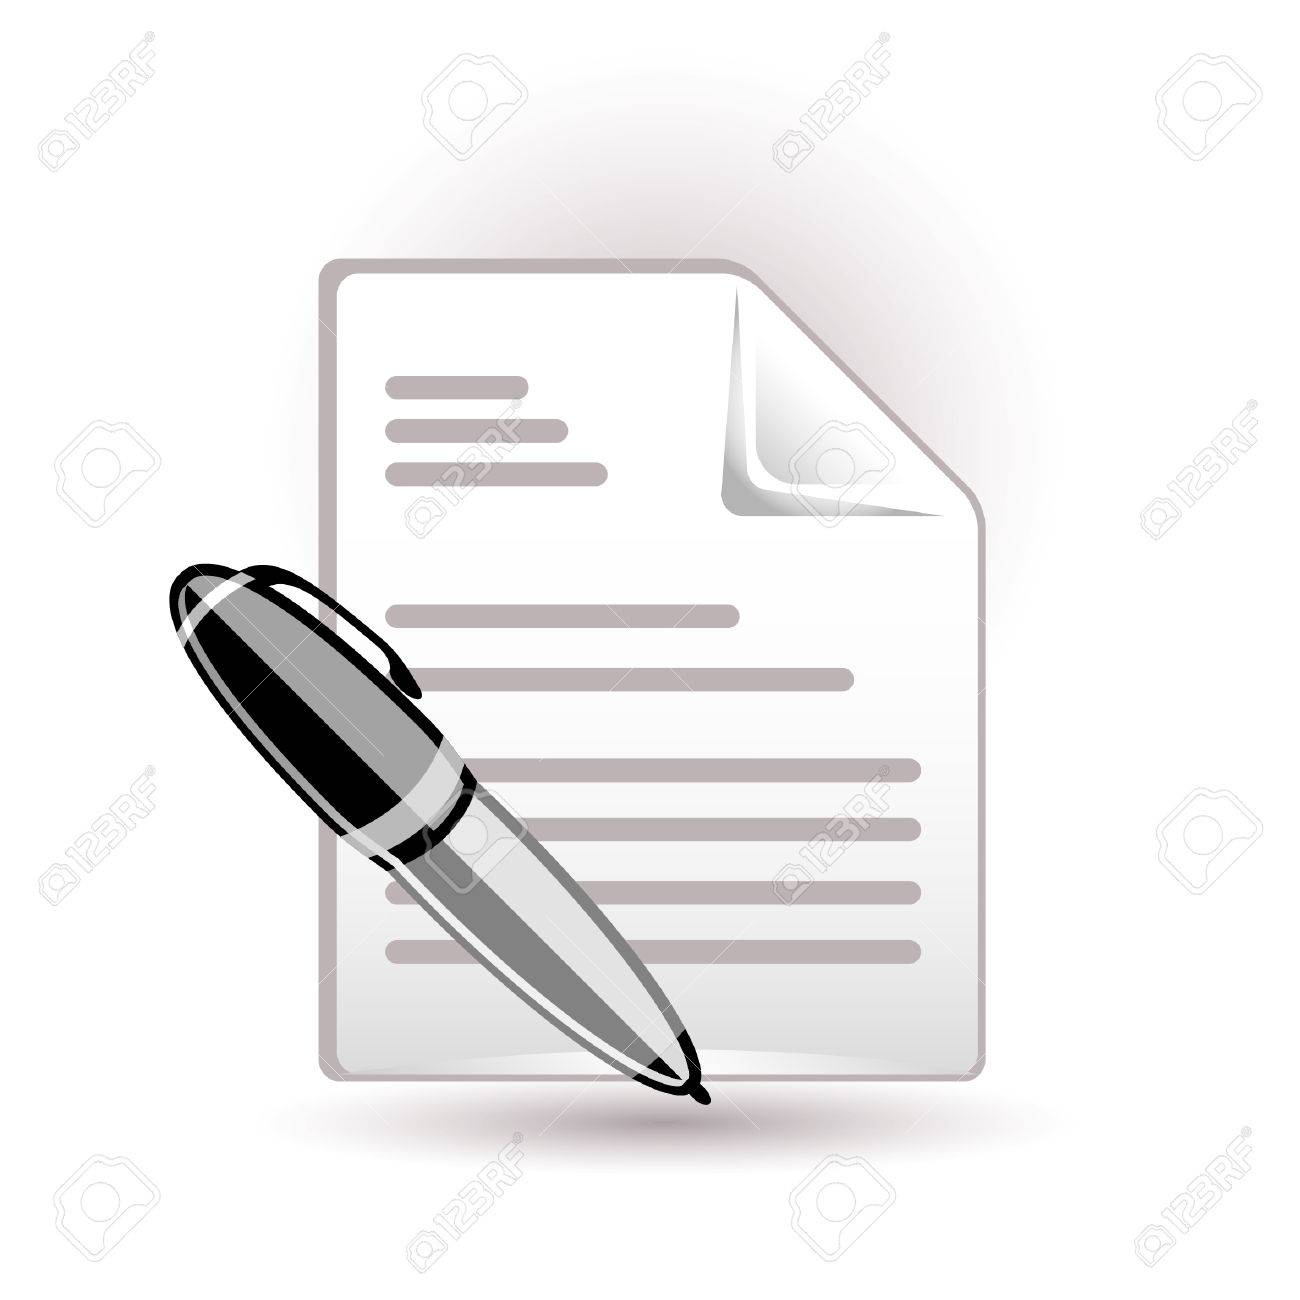 Document and pen icon Stock Vector - 7289637